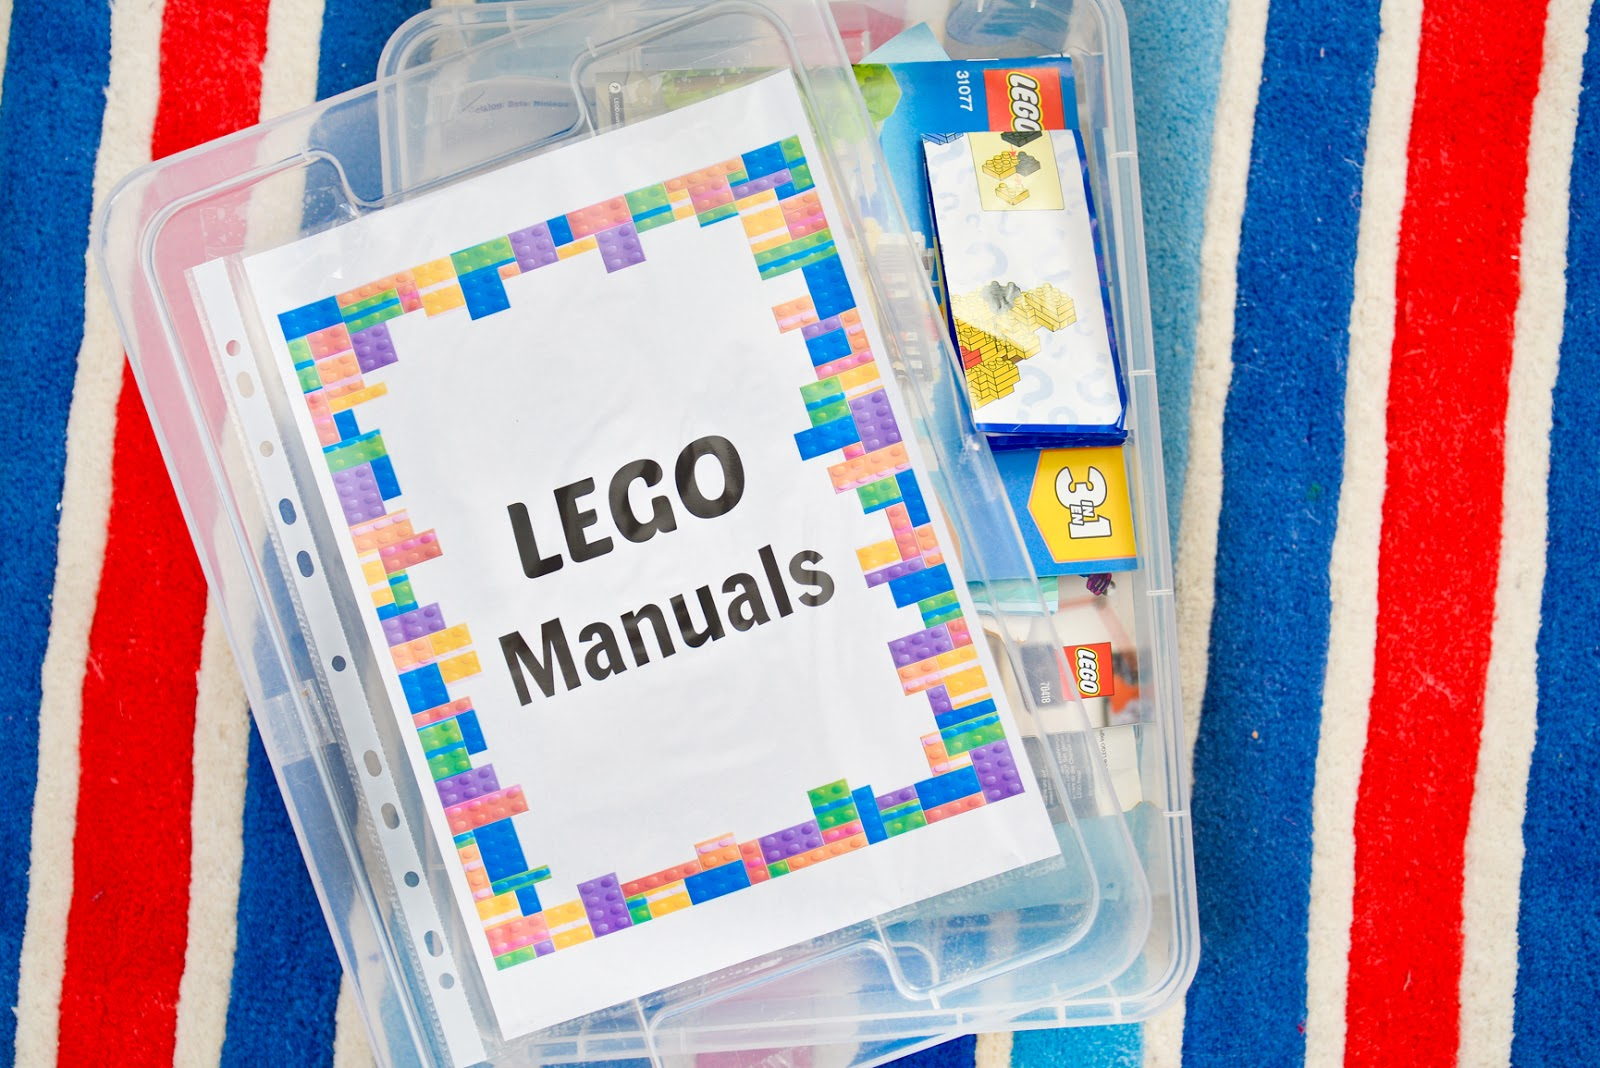 storing lego manuals, lego instruction booklets, lego ideas, lego decor, lego diy, lego storage, lego name, lego letters, lego minifigure display, lego display ideas,